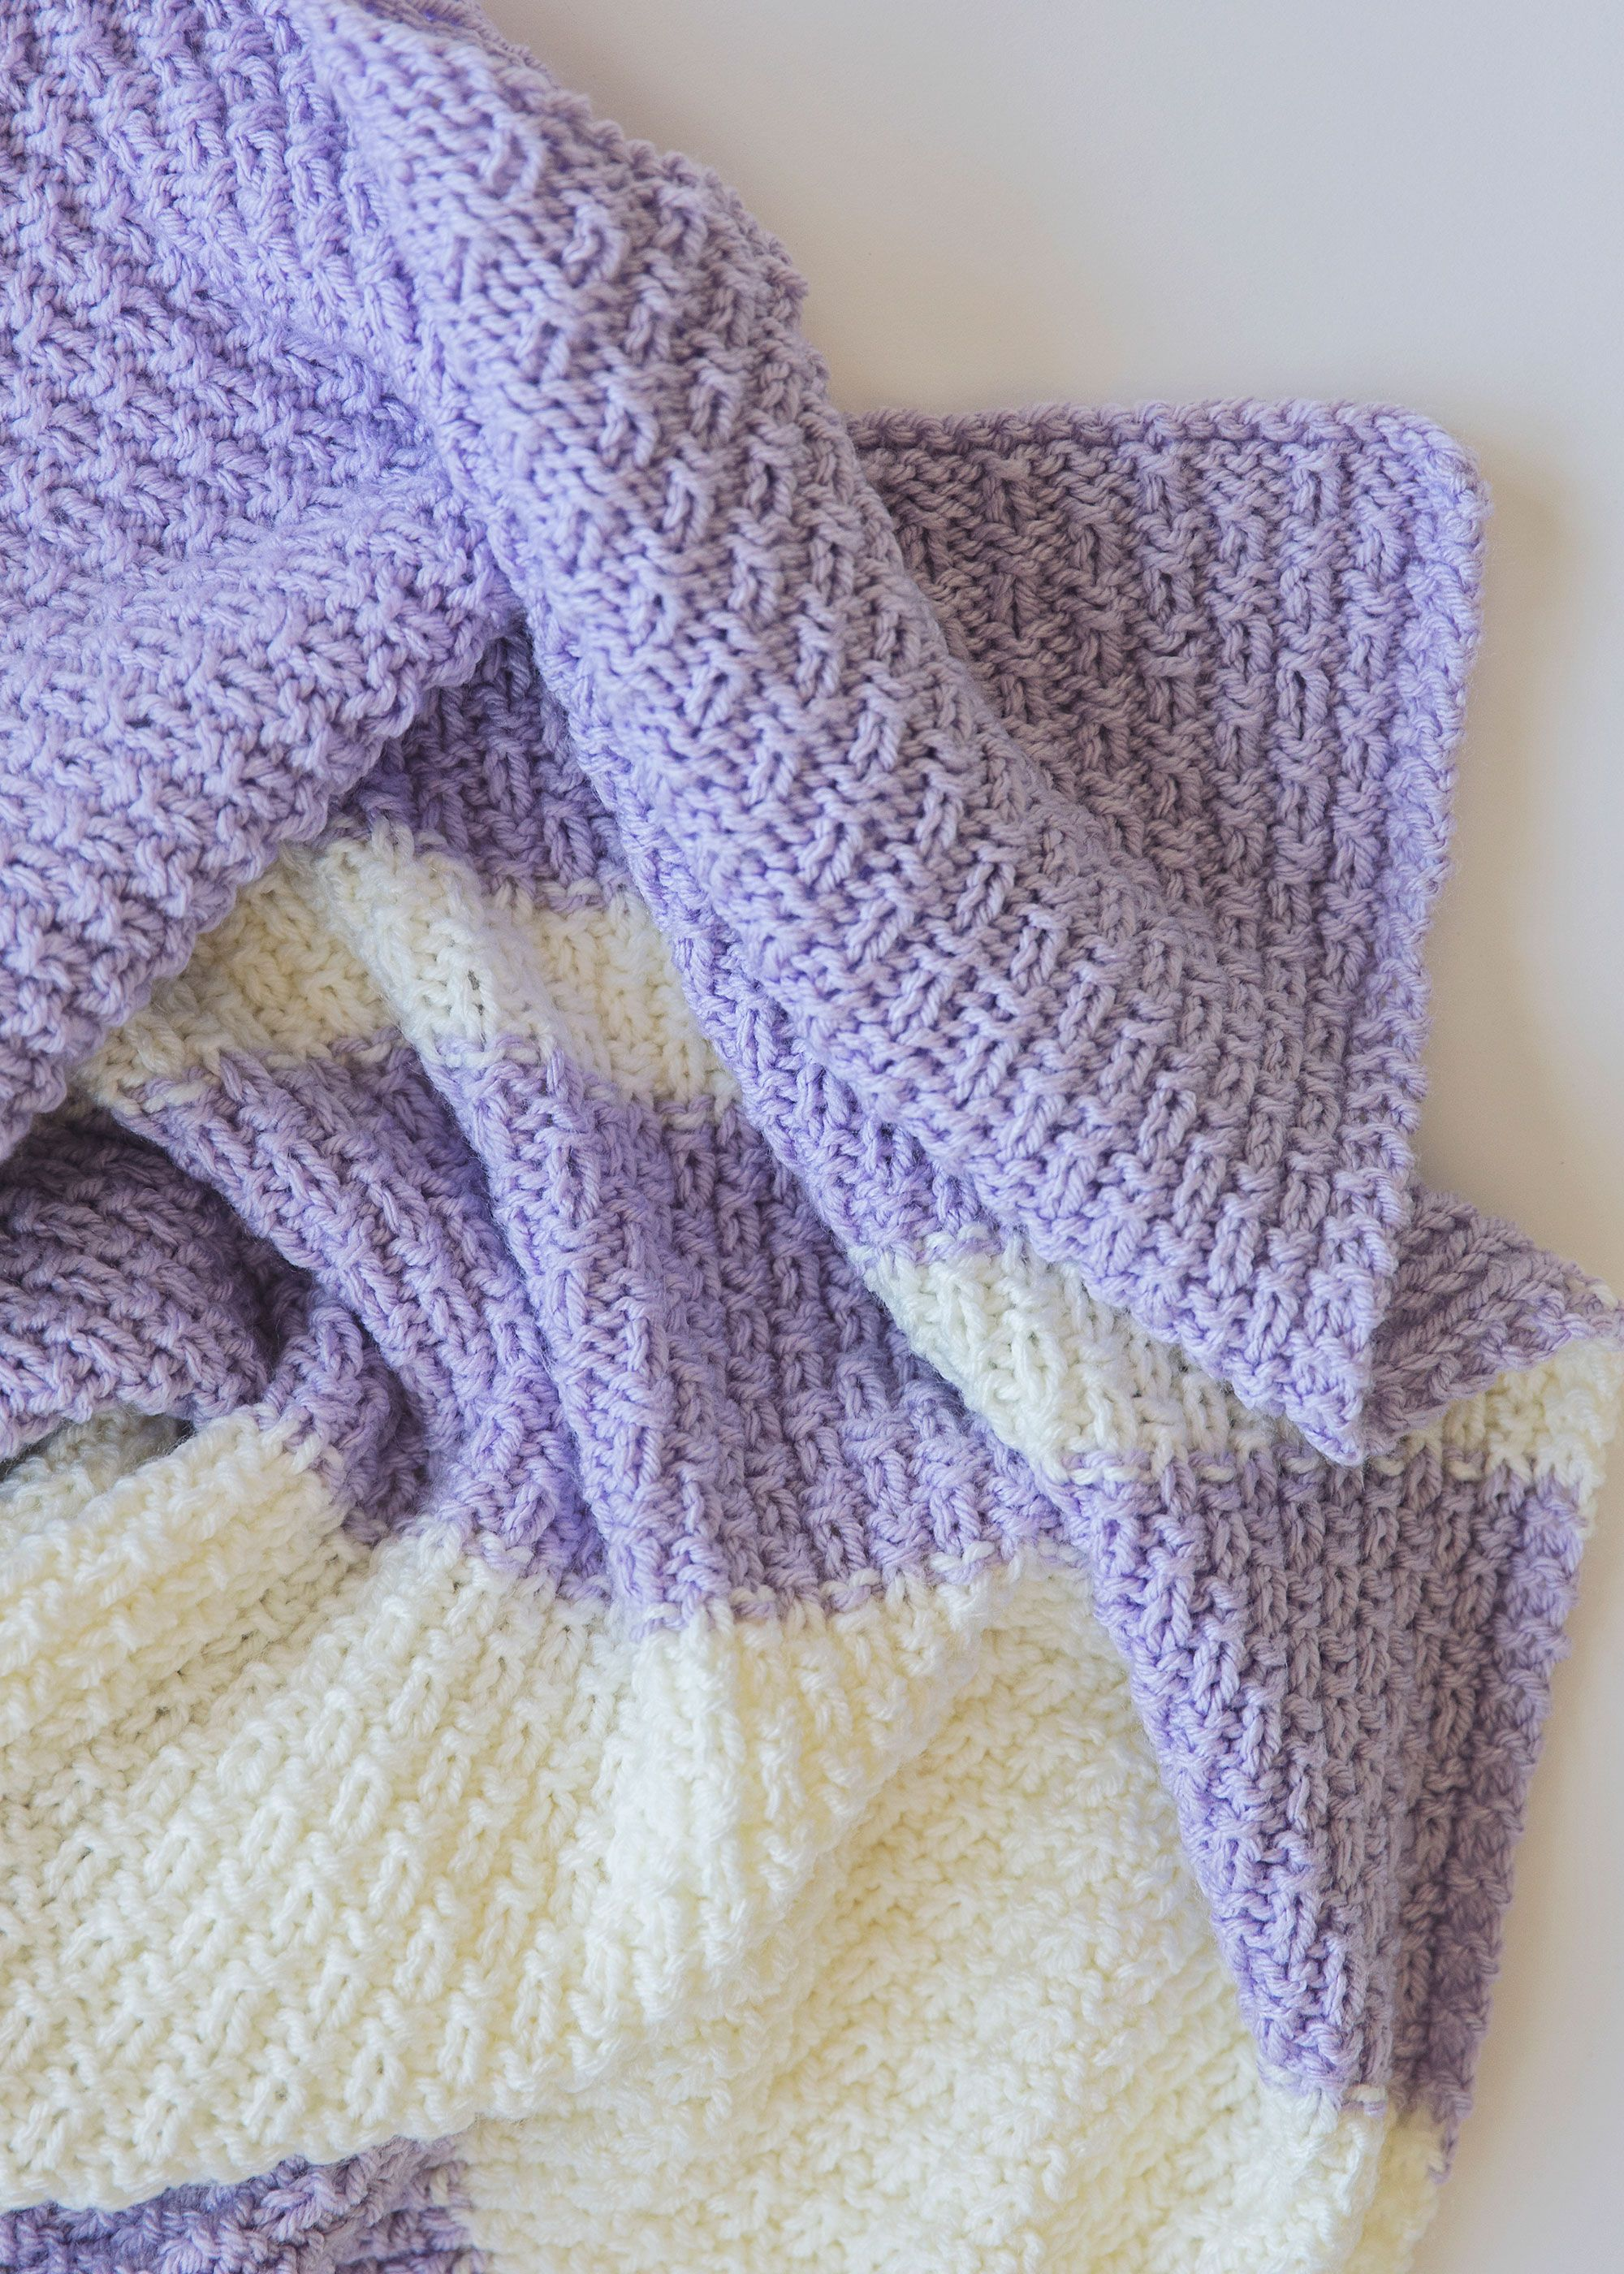 Unusual Knitting Patterns For Toddlers : This easy knit baby blanket pattern is super fun and also ...